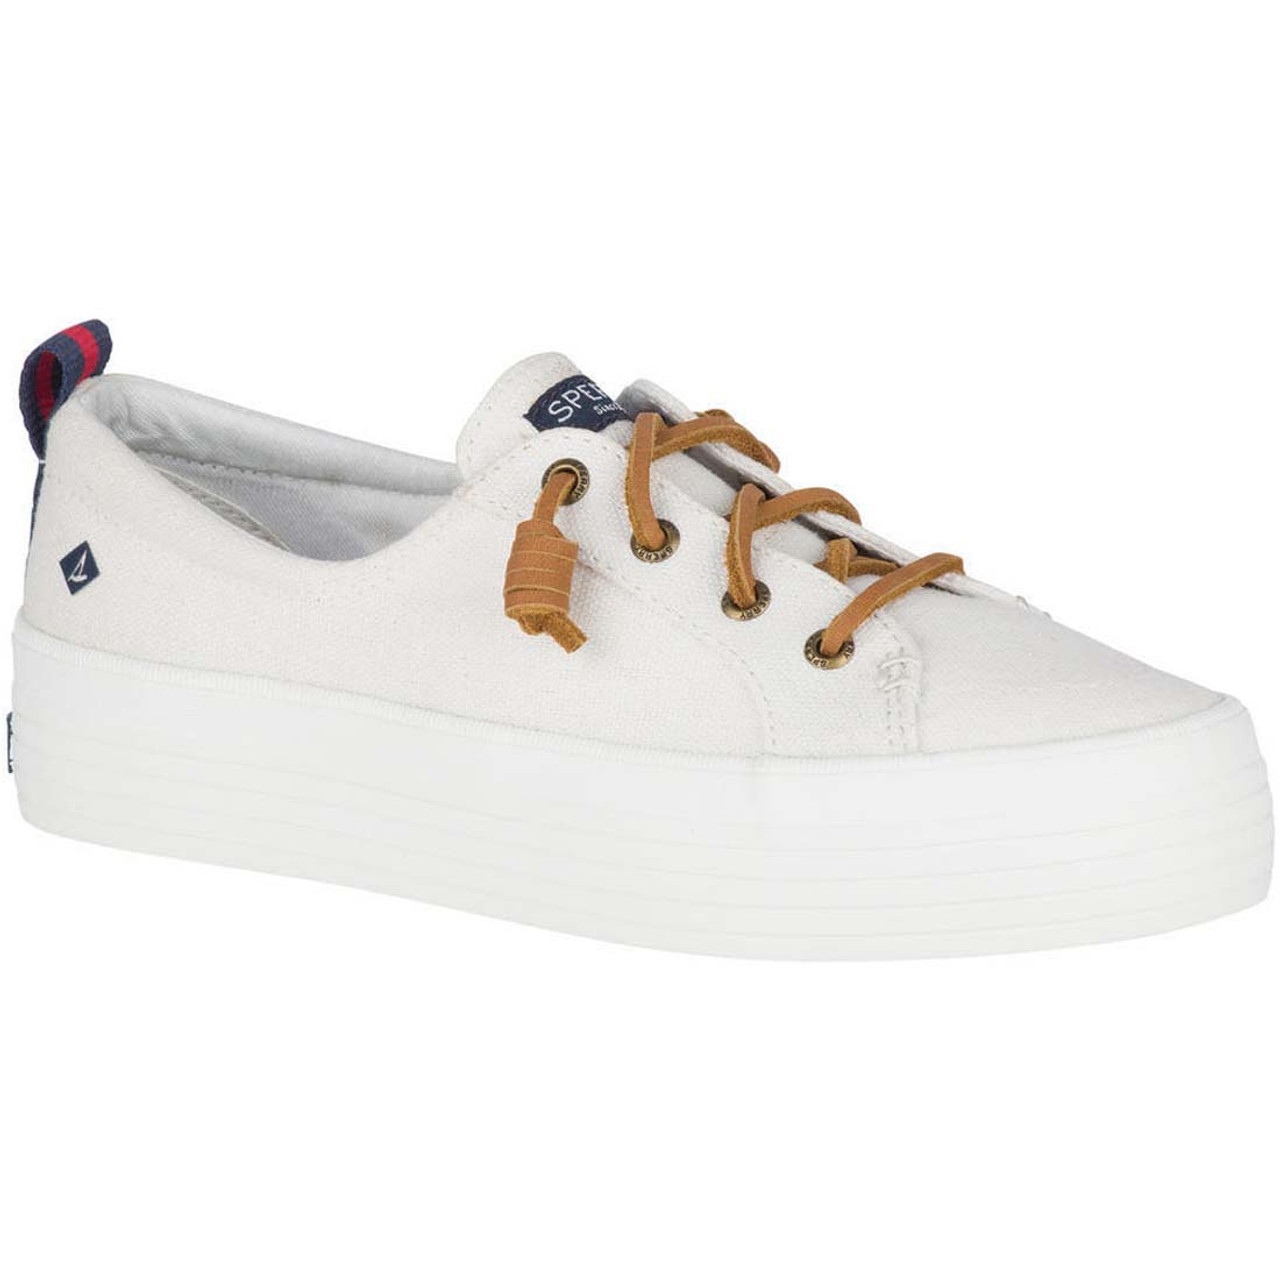 Crest Triple Sneakers - White